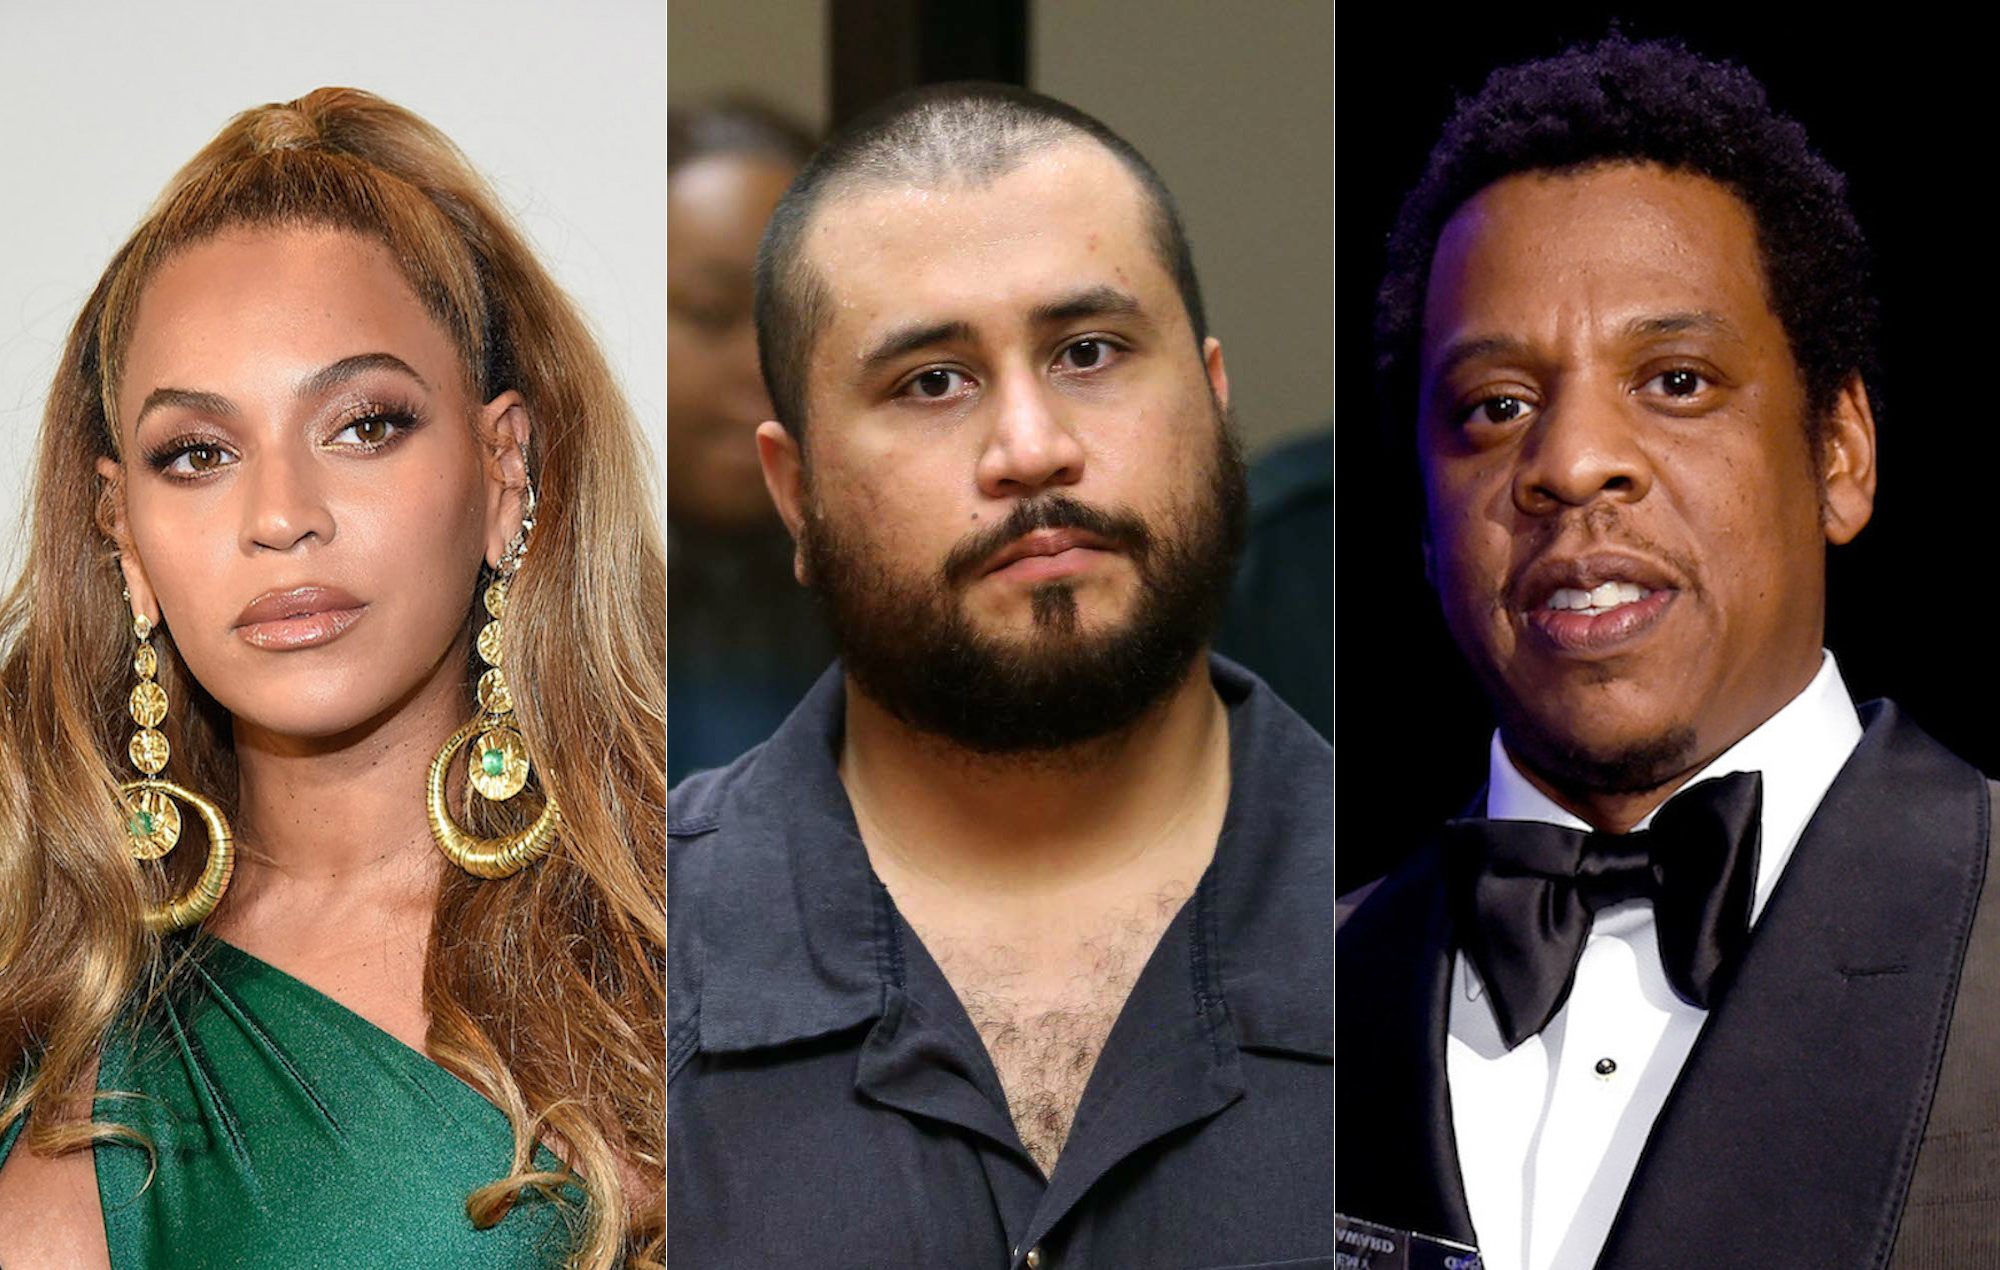 NME Festival blog: George Zimmerman allegedly threatened Beyoncé and Jay-Z over Trayvon Martin docuseries: 'They'll find themselves inside a 13-foot gator'